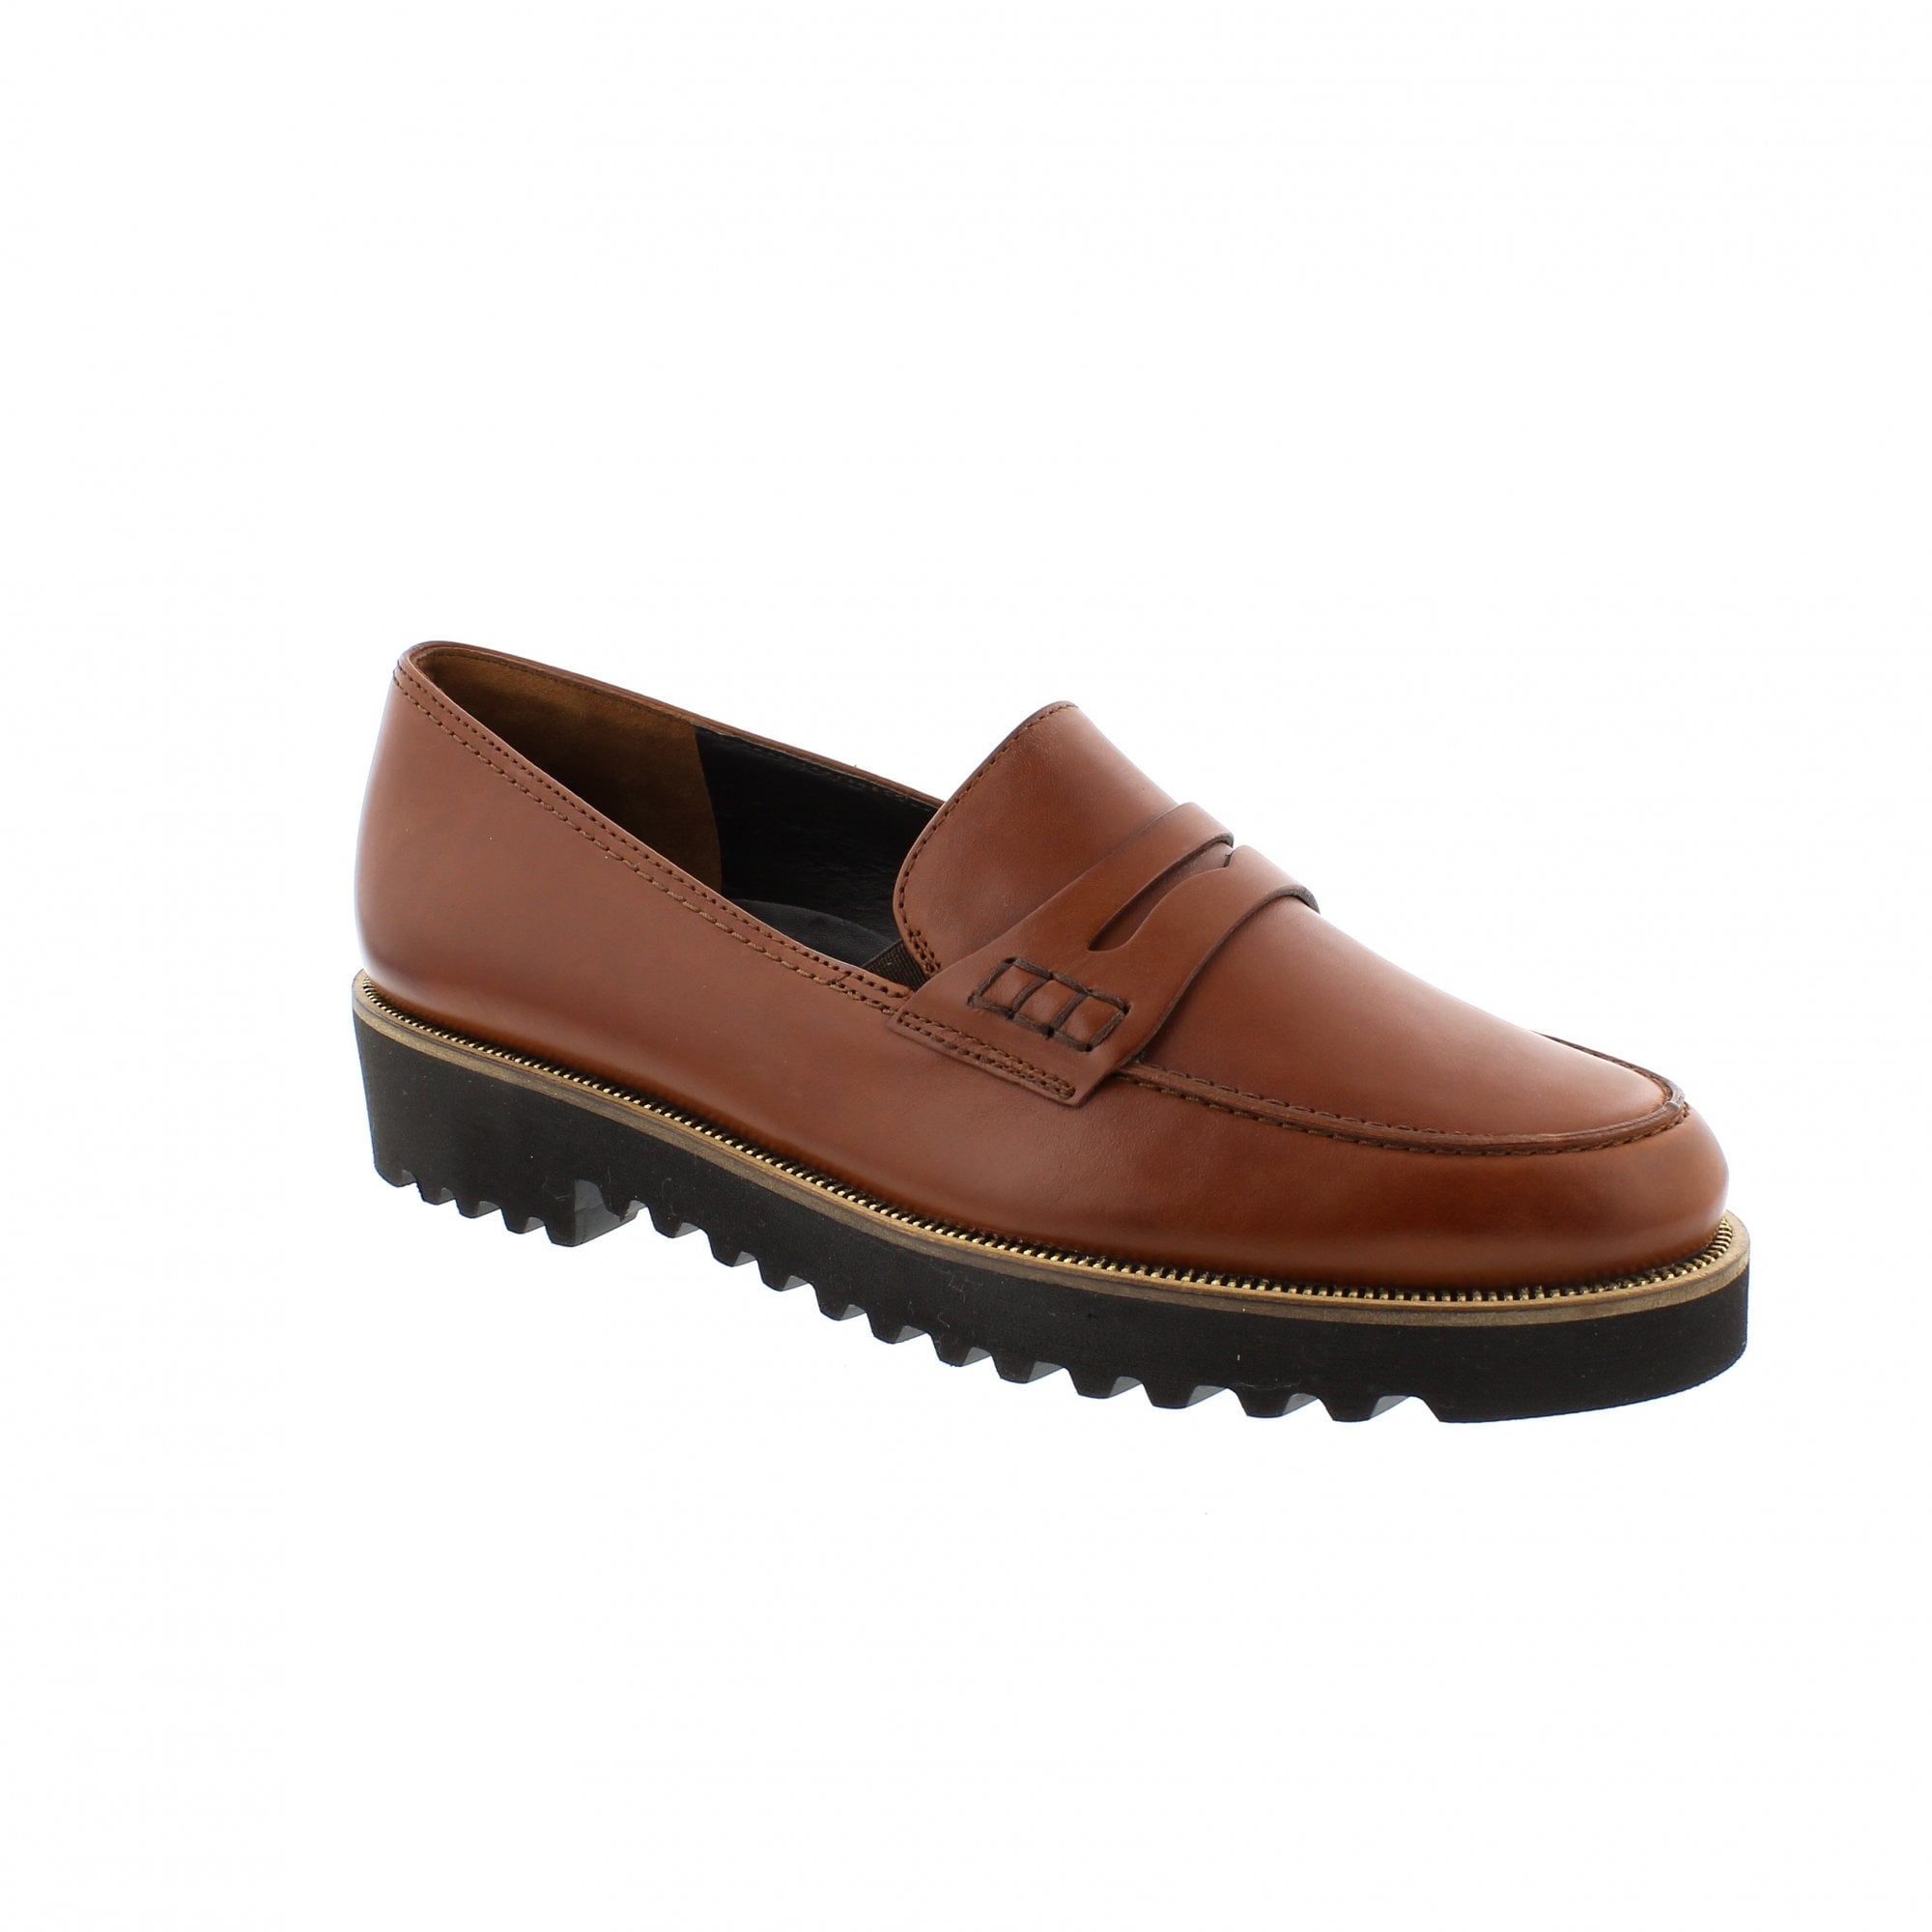 offizieller Preis günstig kaufen wie kauft man Paul Green 1011-125 Tan Leather Slip On Shoes | Rogerson Shoes